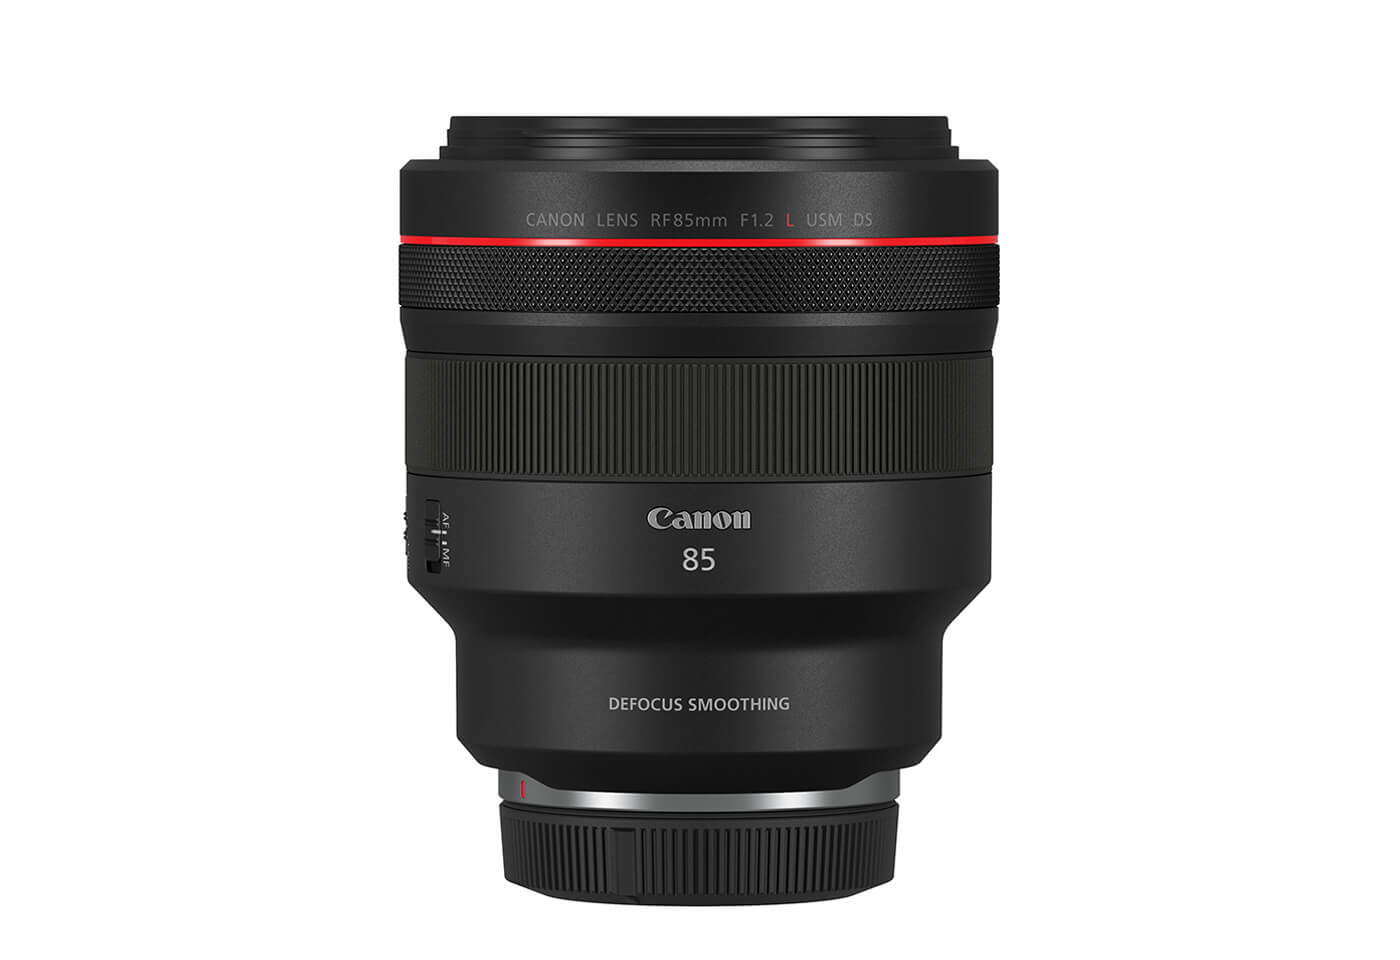 Product image of RF 85mm f/1.2L USM DS prime lens front face